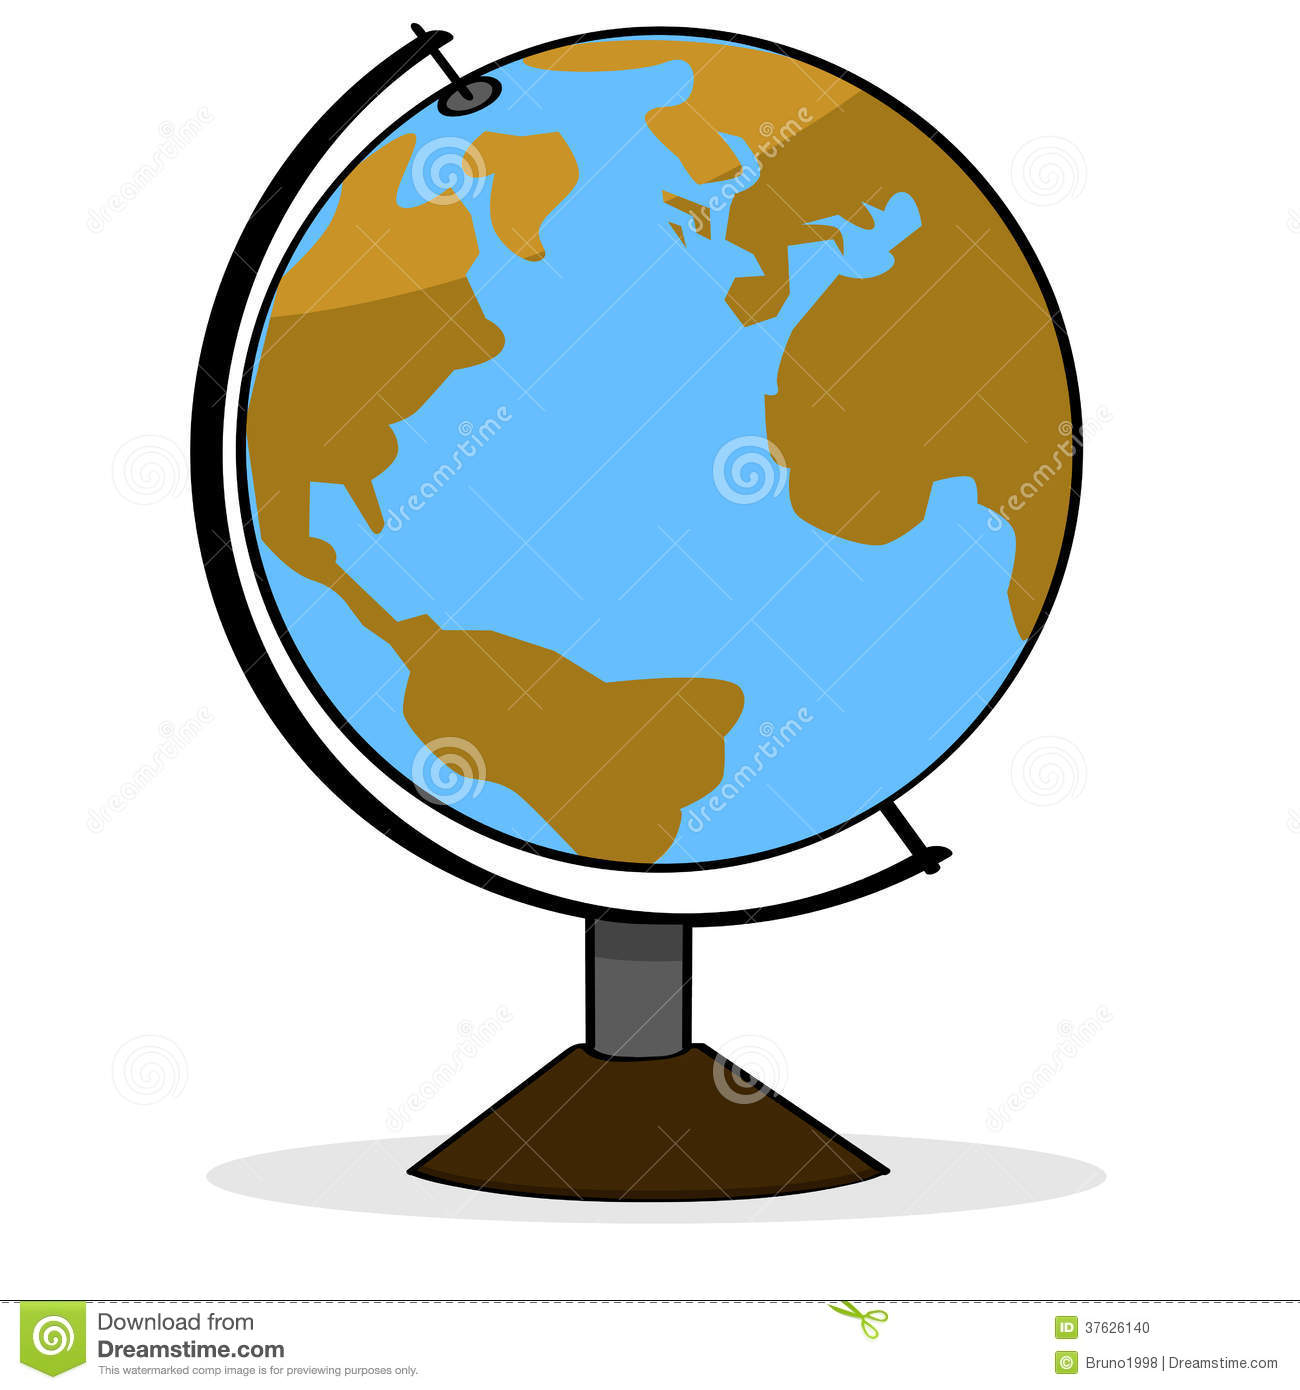 Cartoon illustration showing a school geography globe representing ...